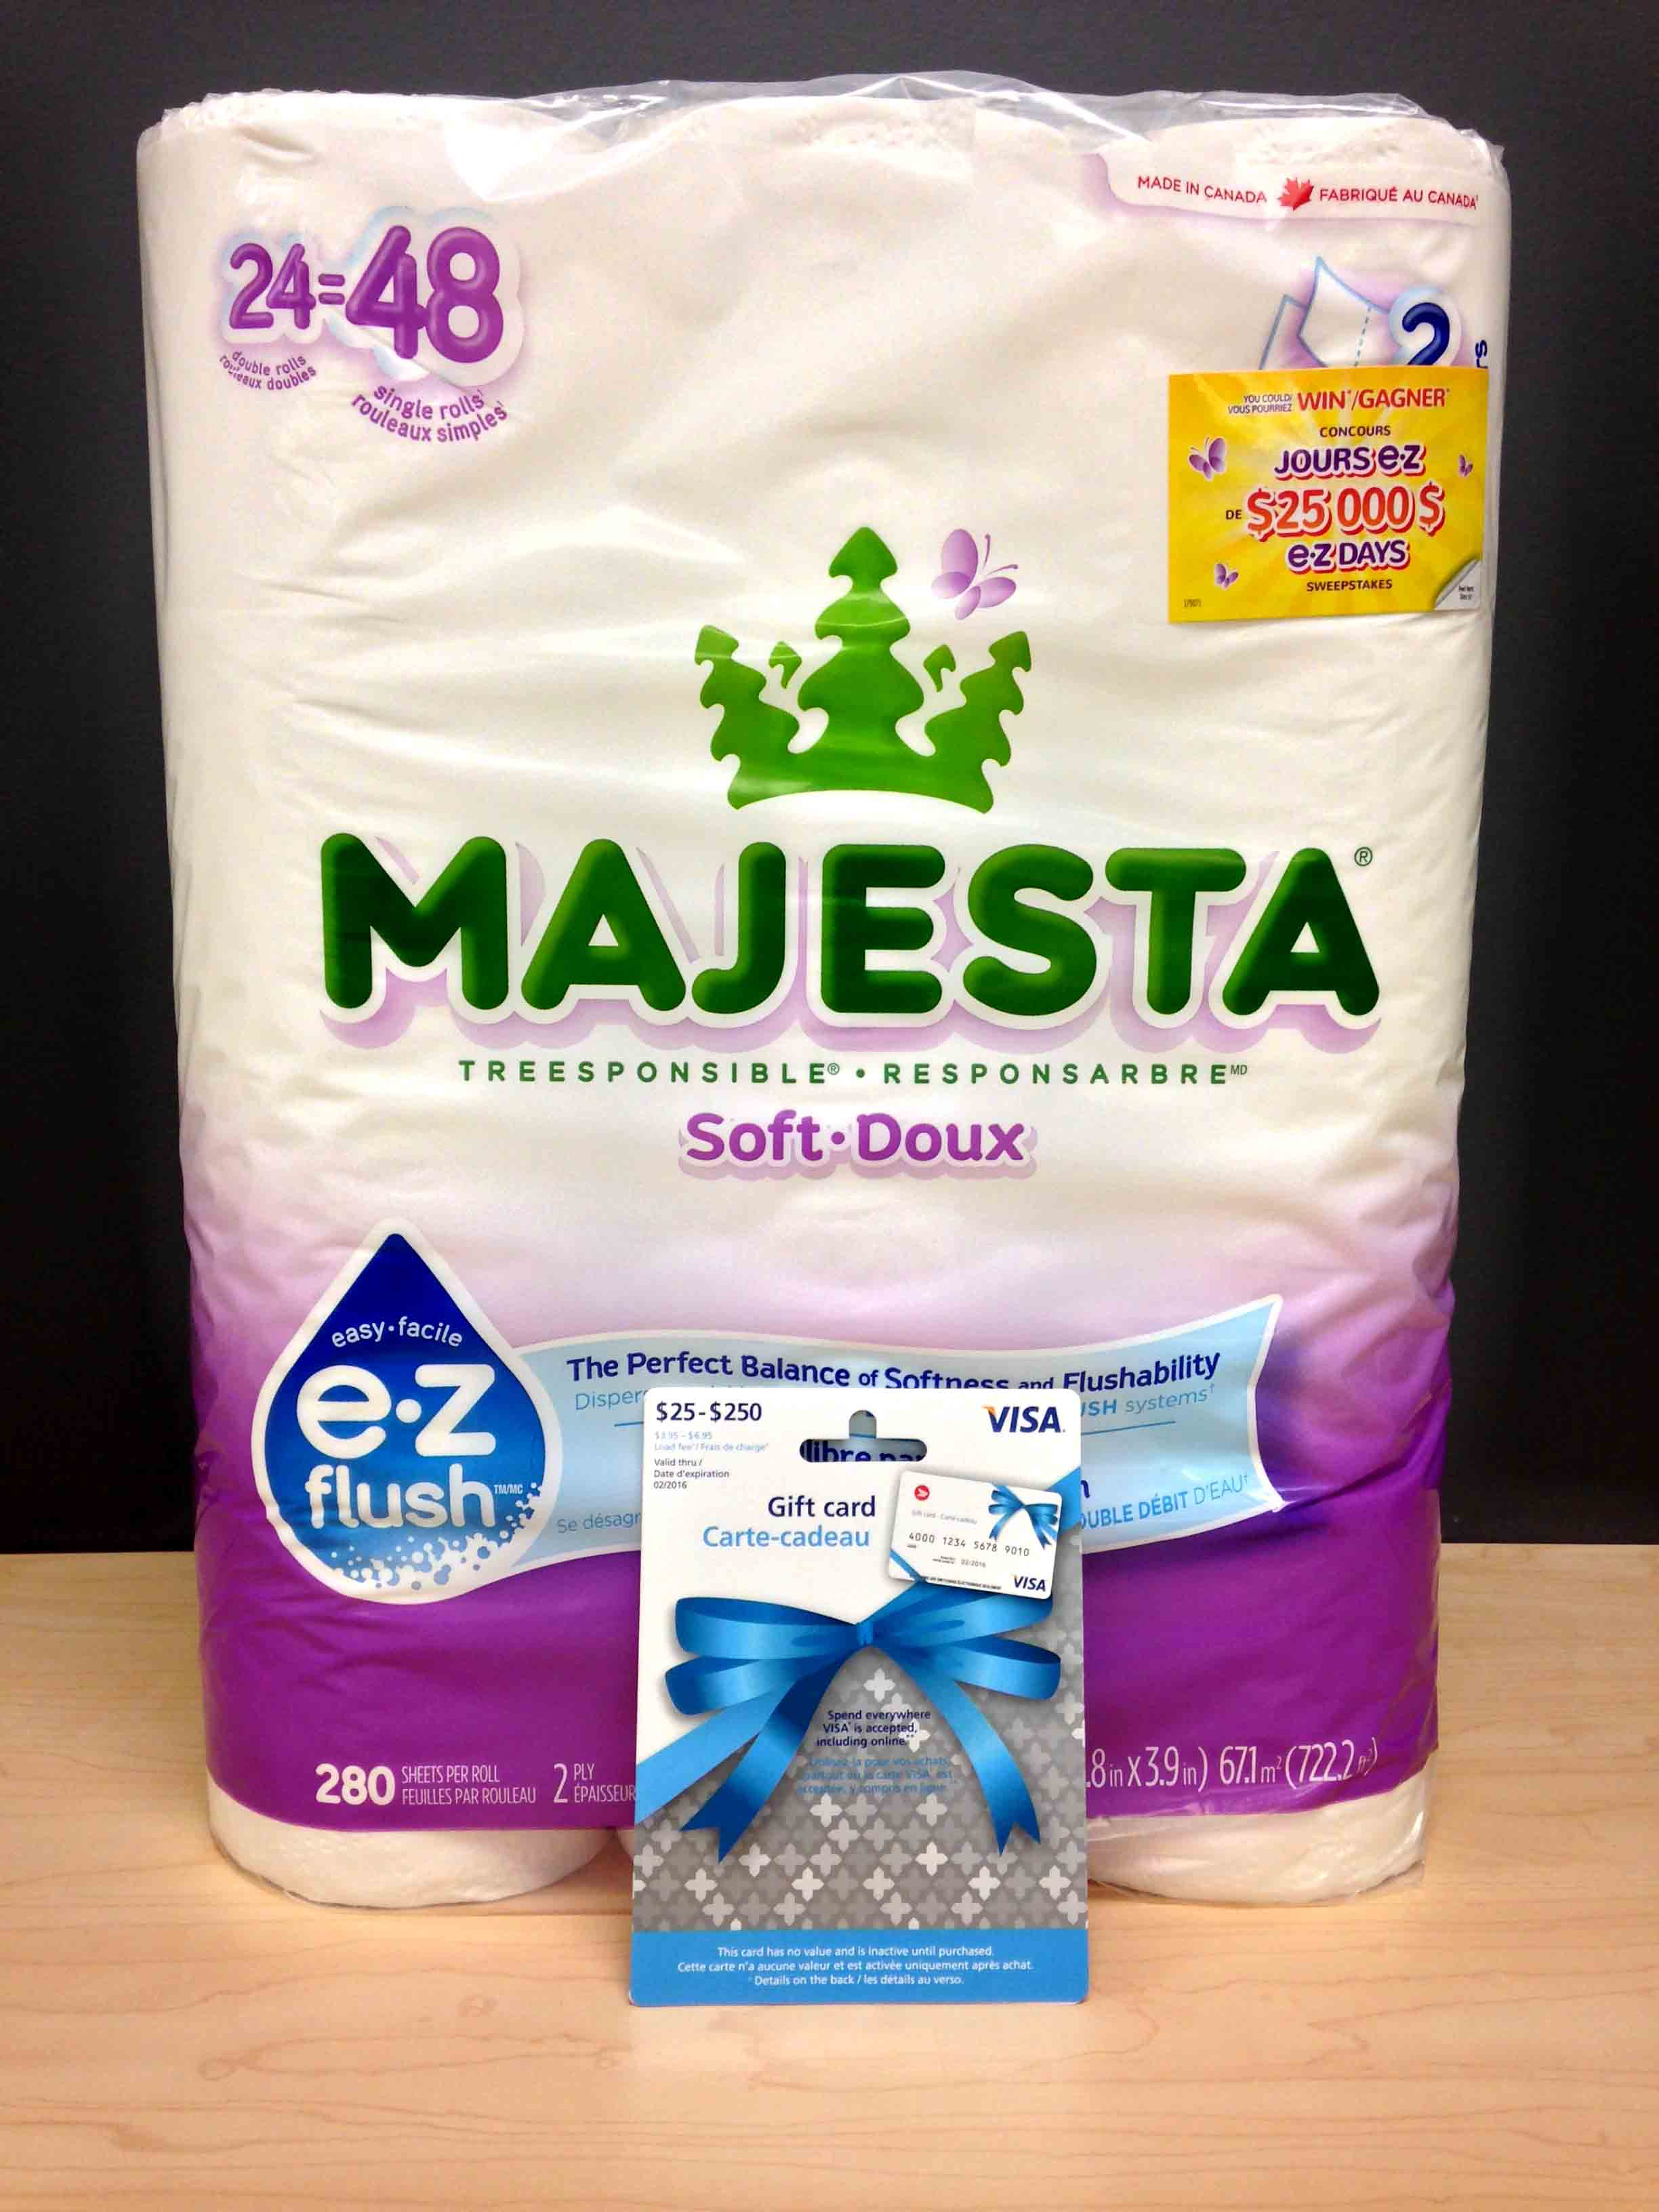 Win a Visa Card & Majesta Products ARV $40 {Canada}